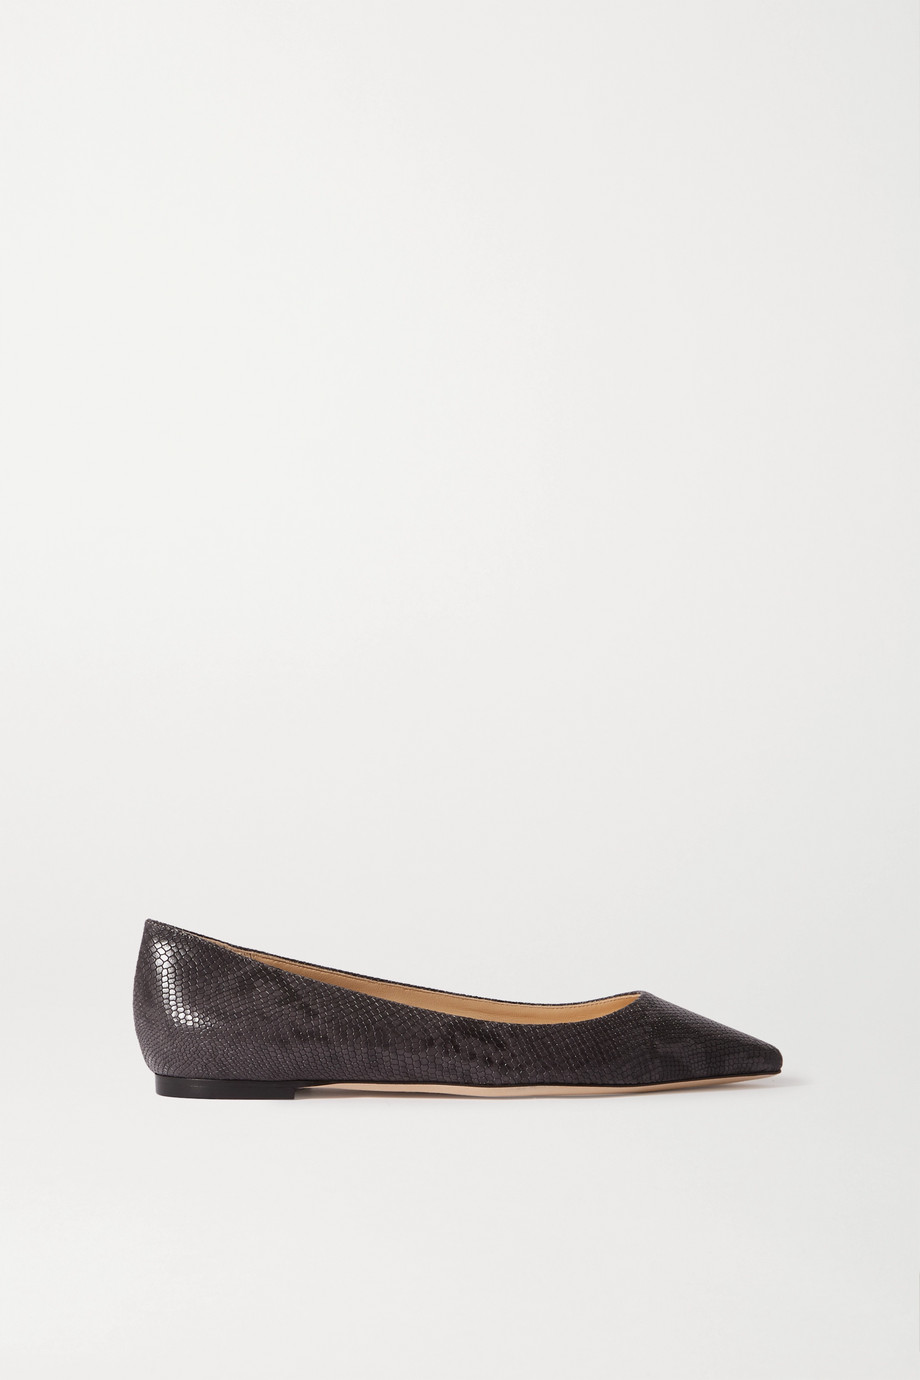 Jimmy Choo Romy snake-effect leather point-toe flats